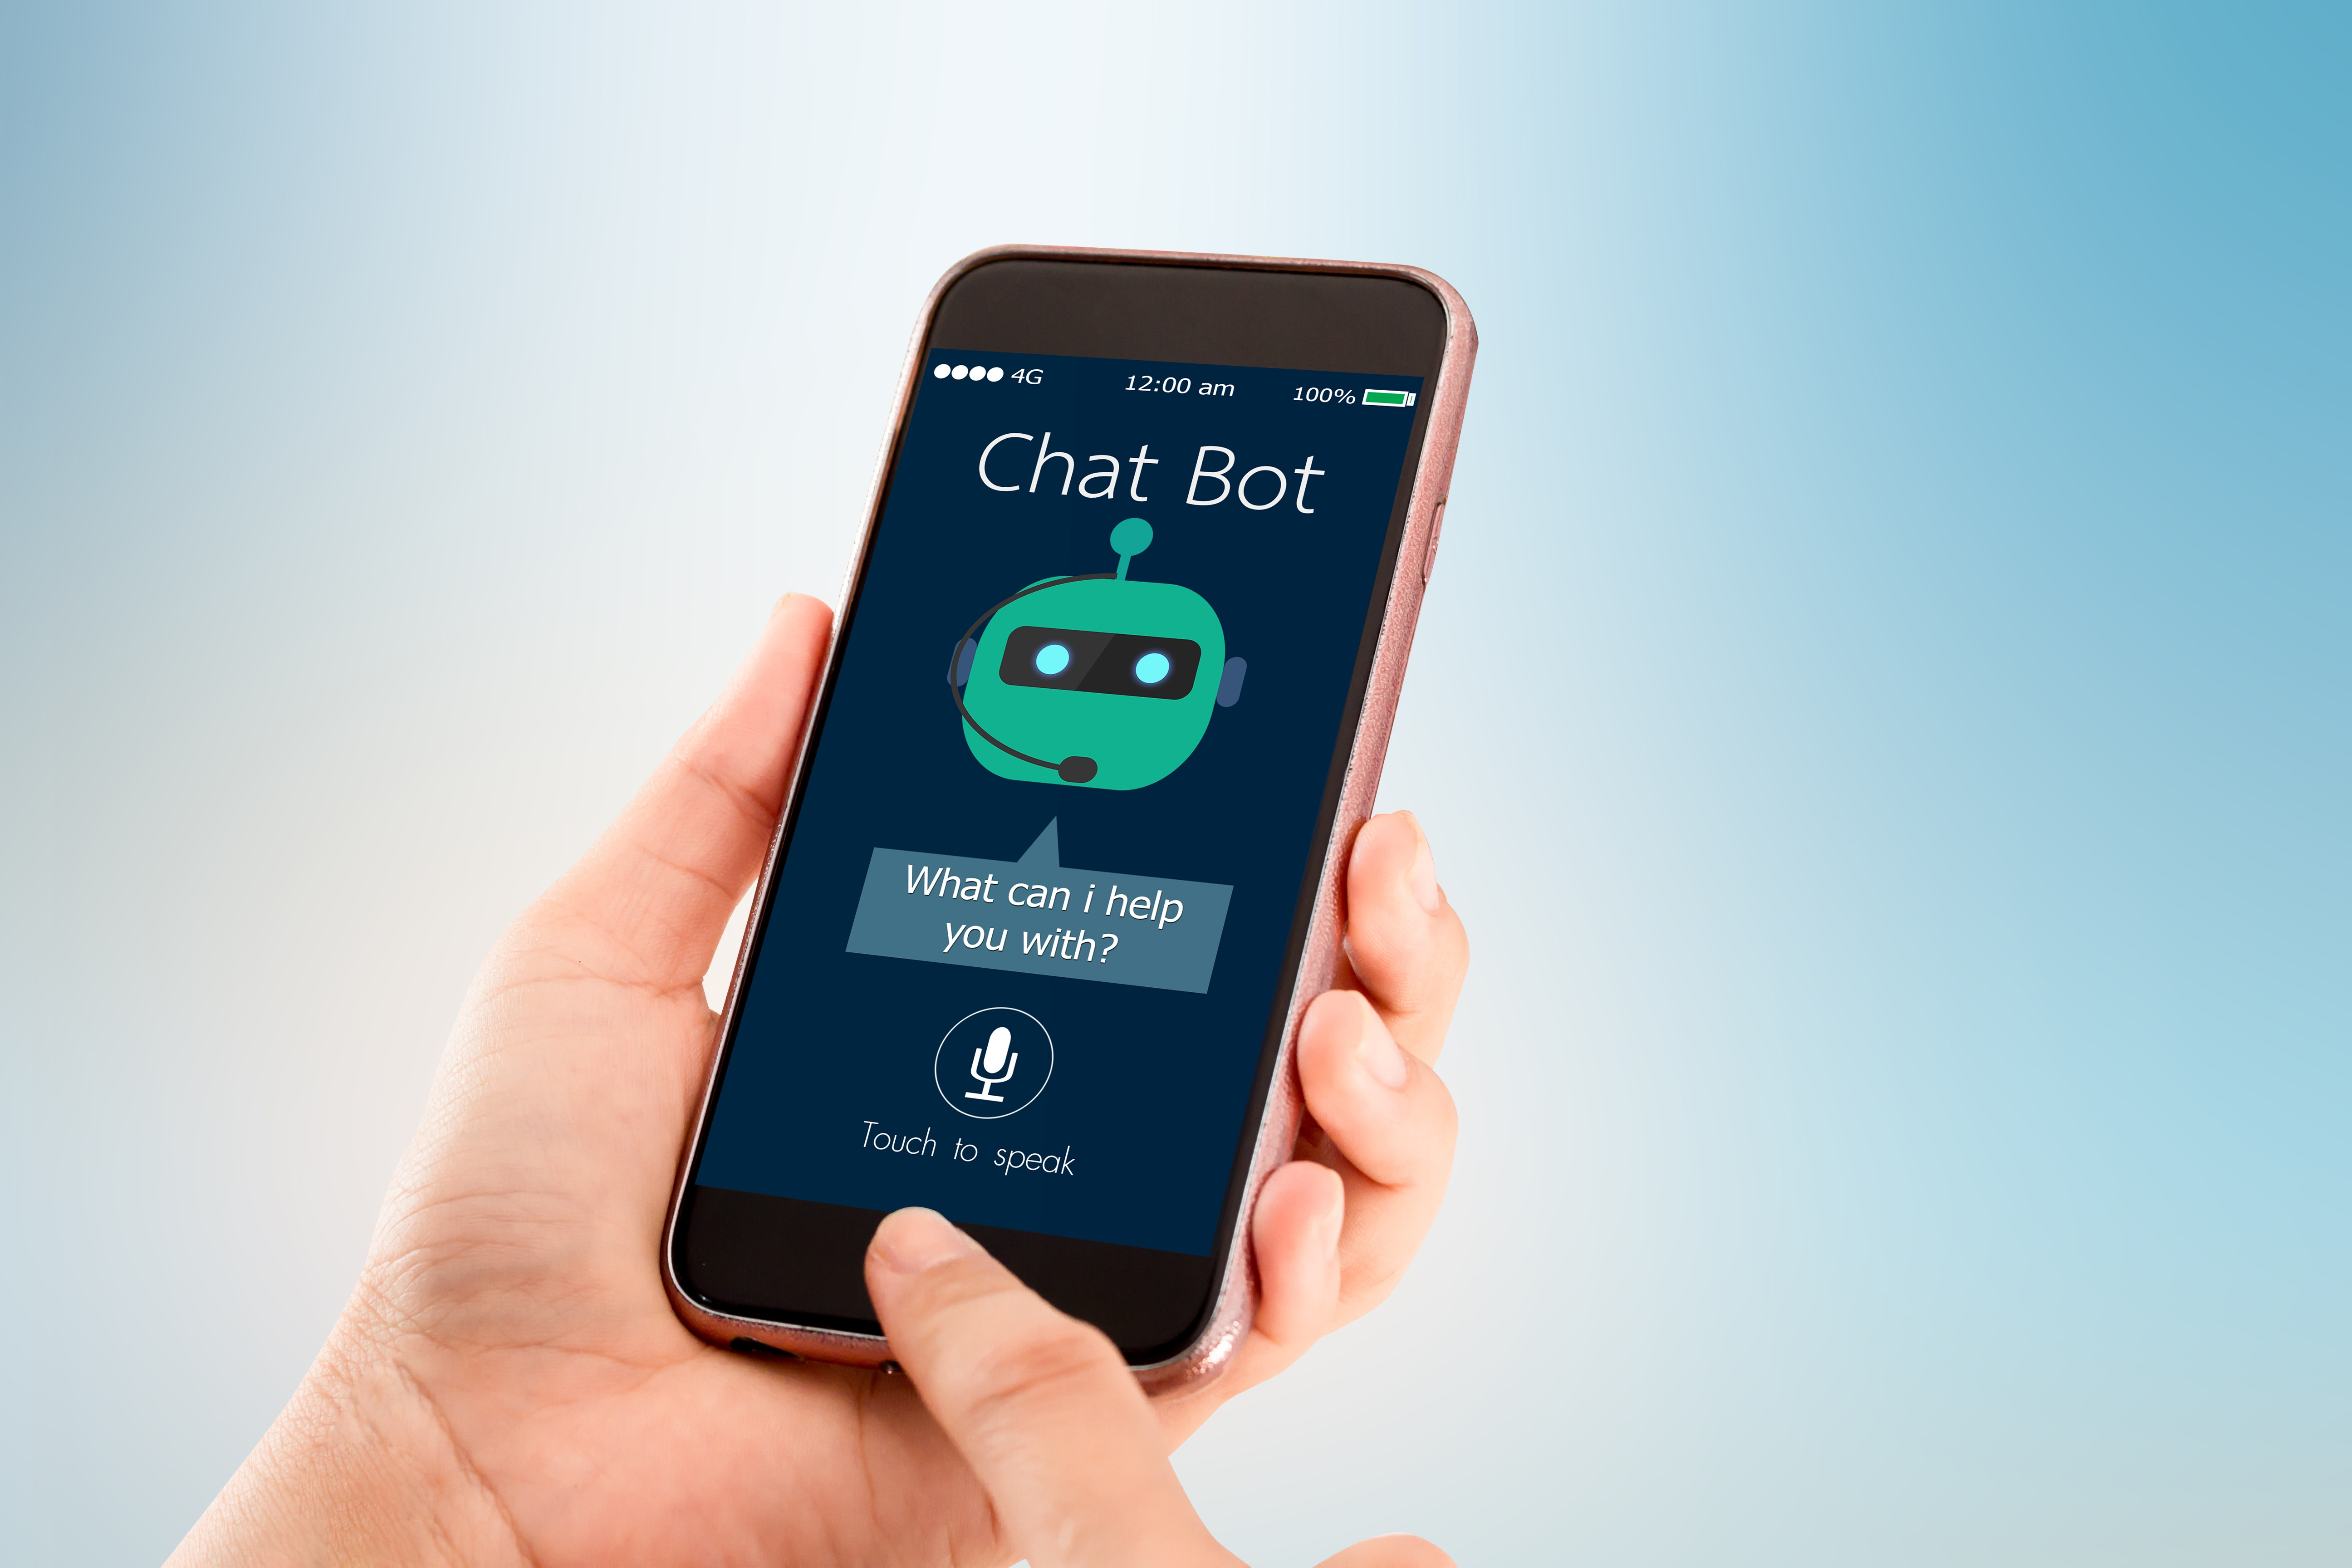 Should You Use Messaging Chatbots for Service, Transactions and Support?